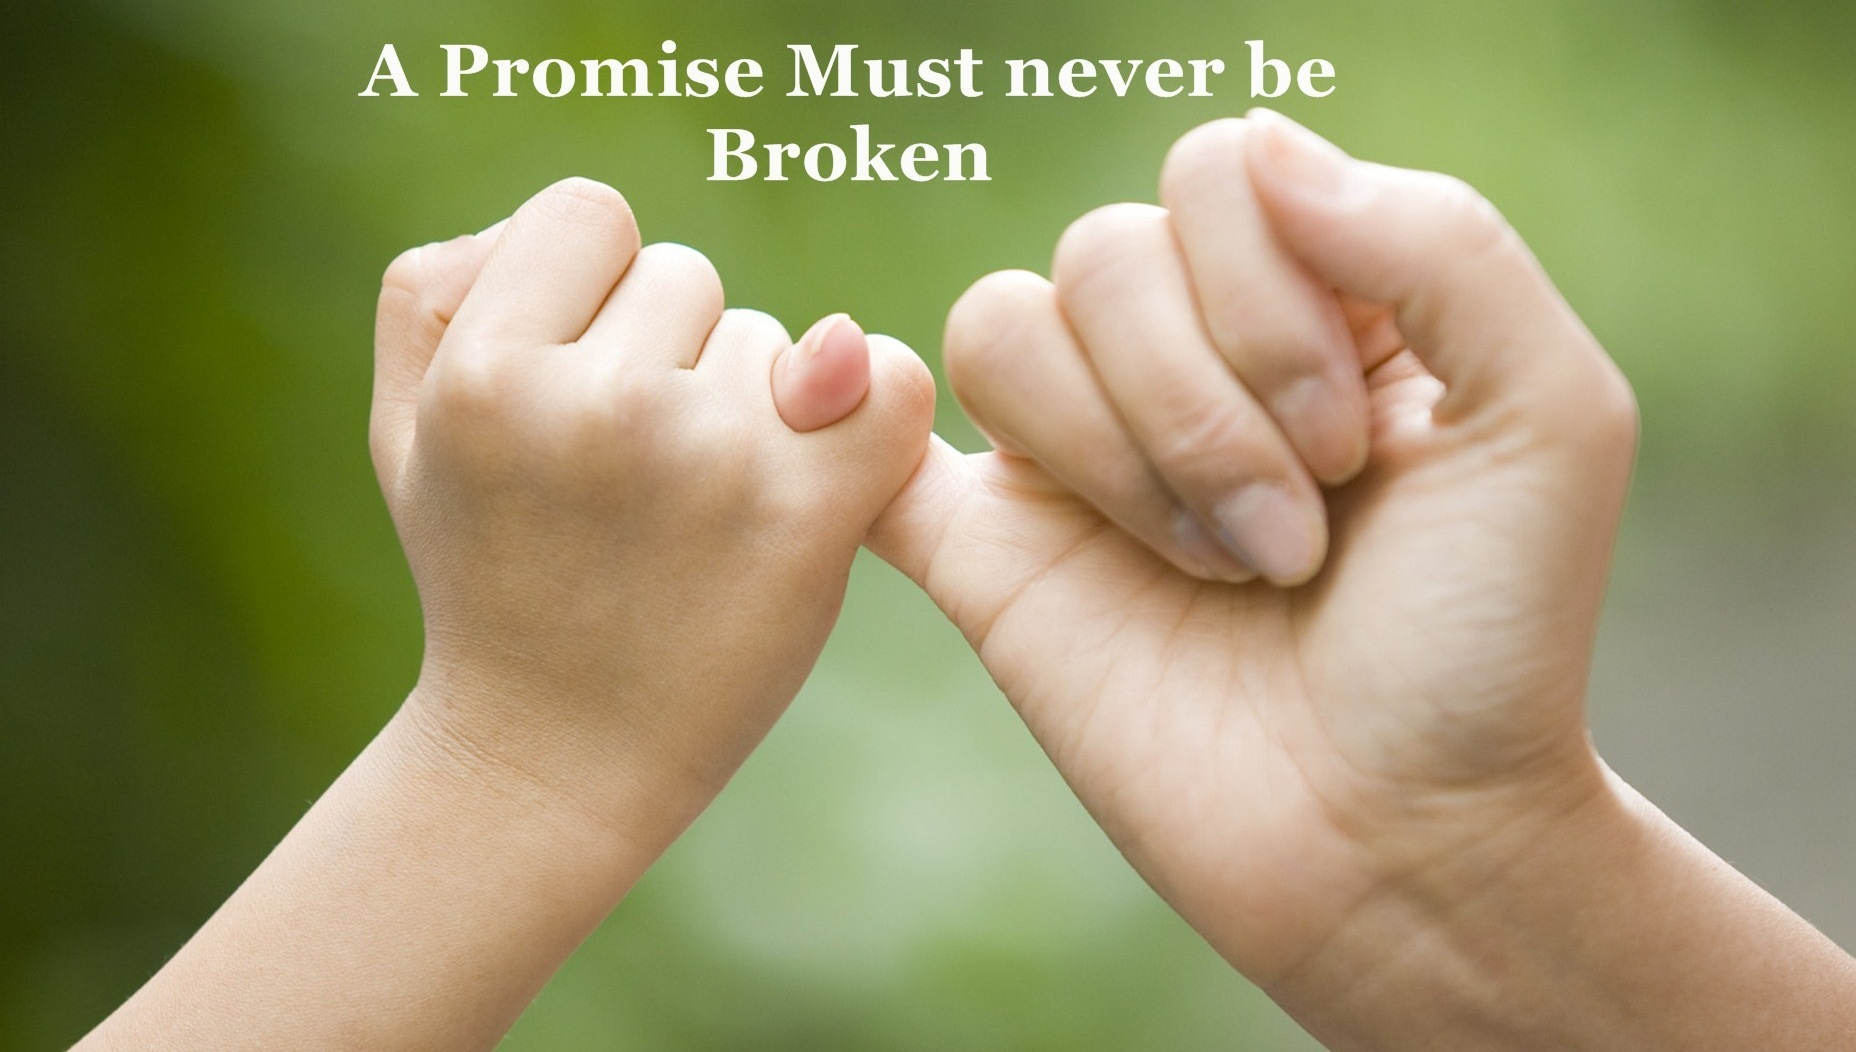 happy promise day pictures